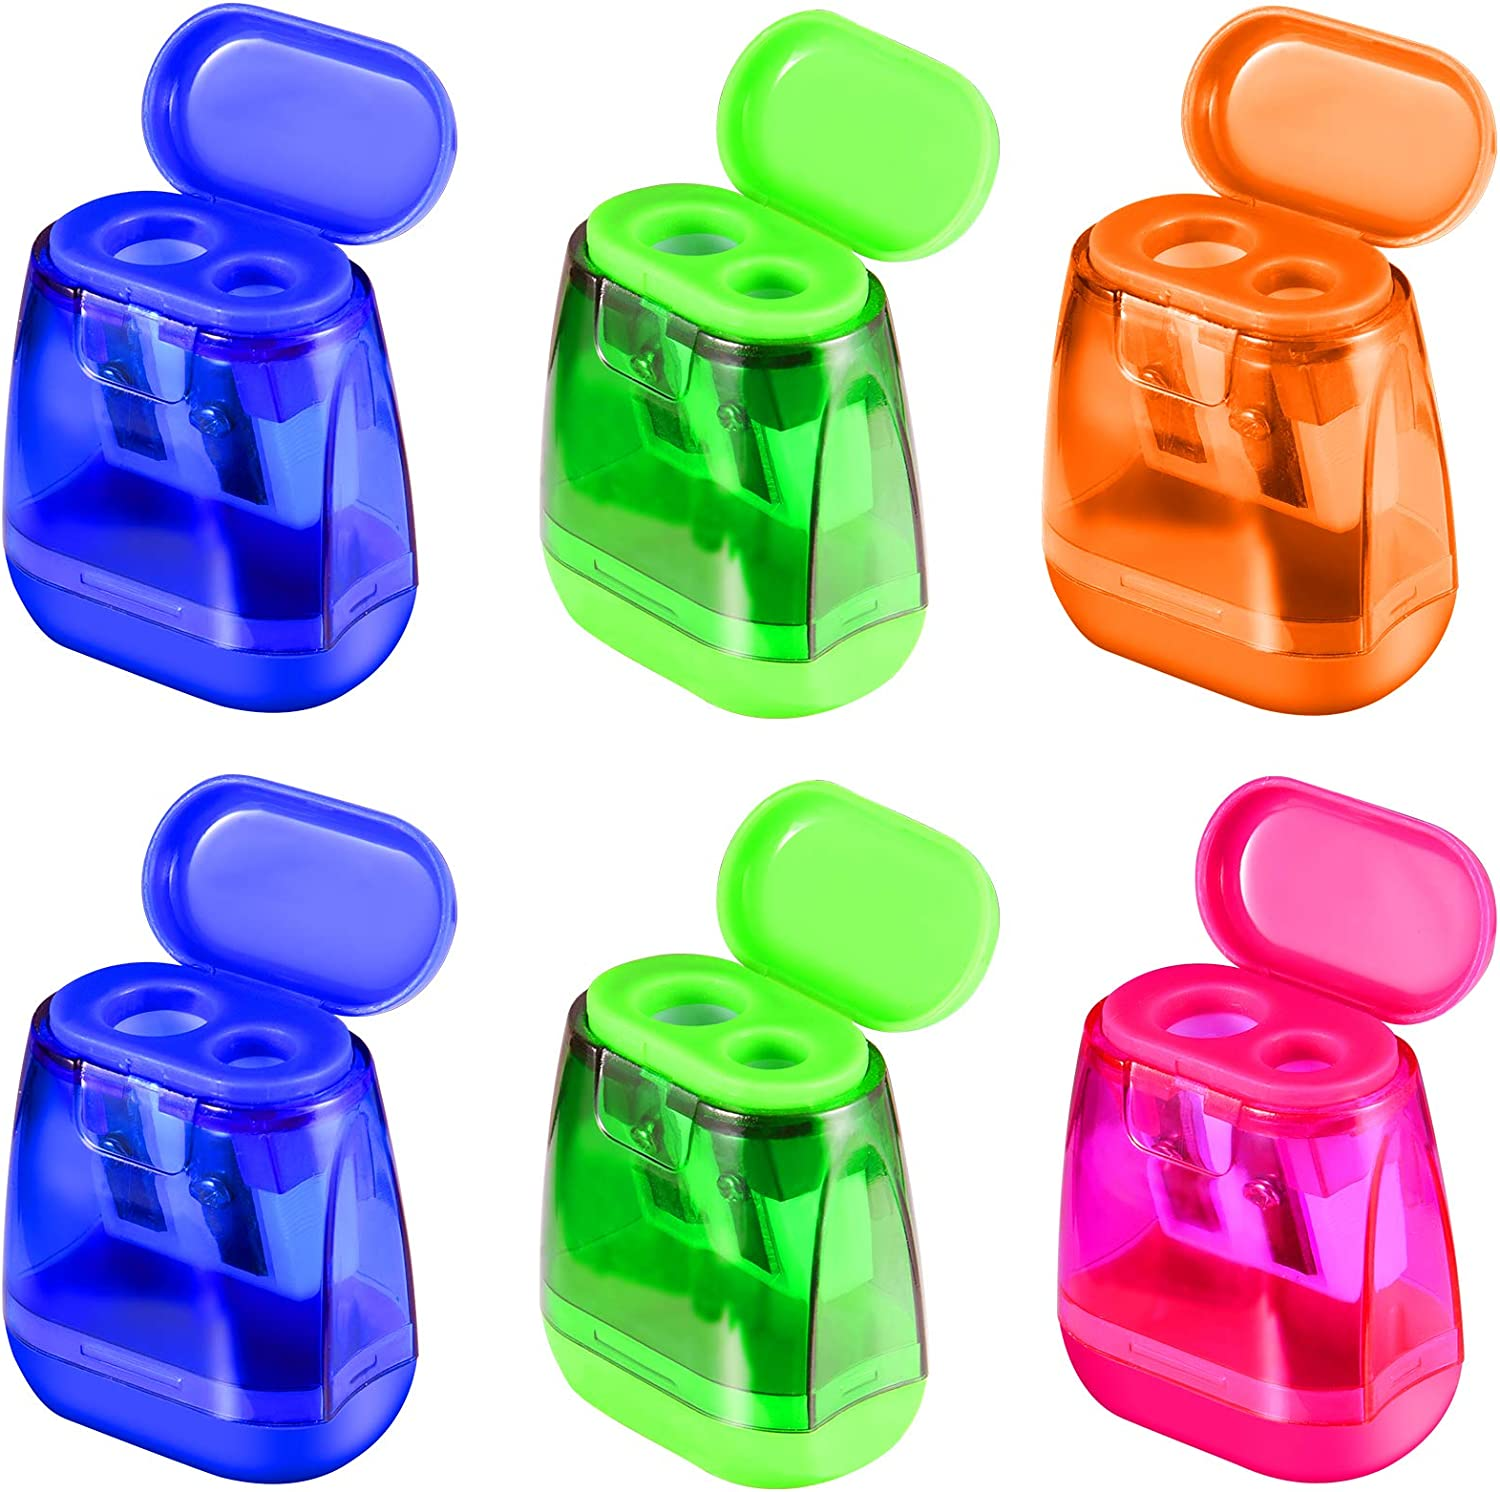 Manual Pencil Sharpeners, 6PCS Dual Holes Sharpener with Lid for Kids, Handheld Pencil Sharpener for School Home Office Supply Colorful